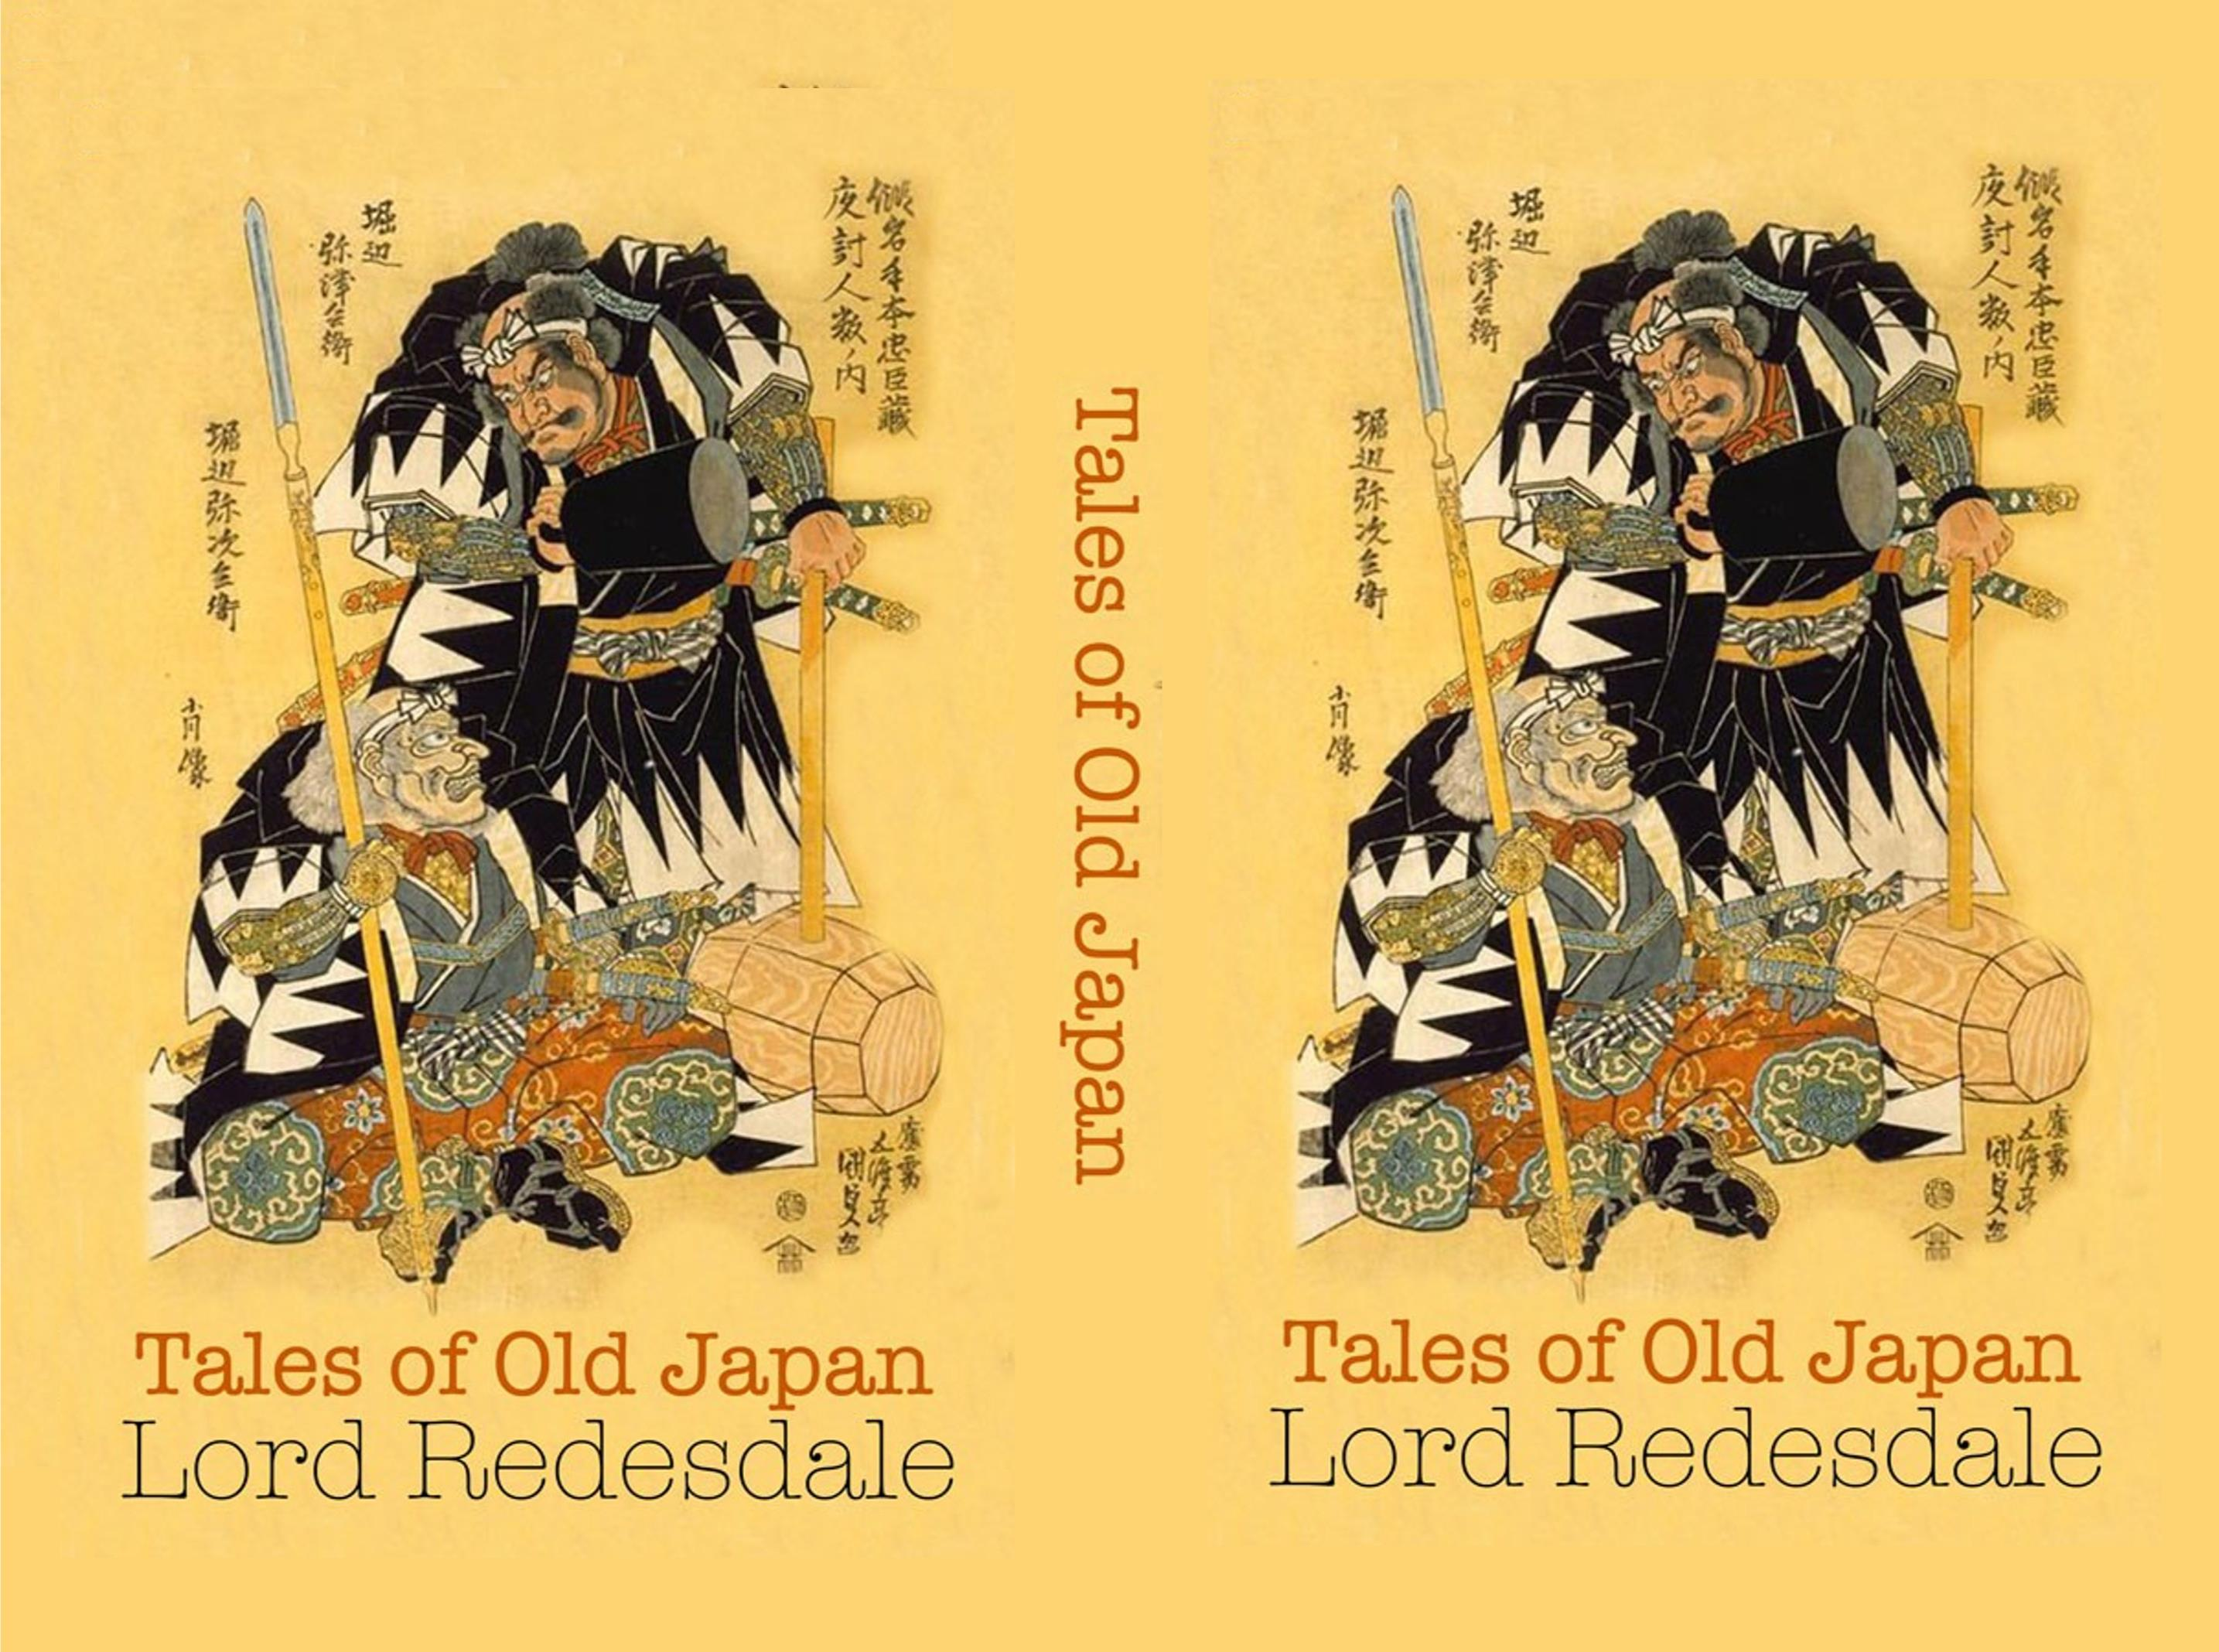 Tales of Old Japan cover image